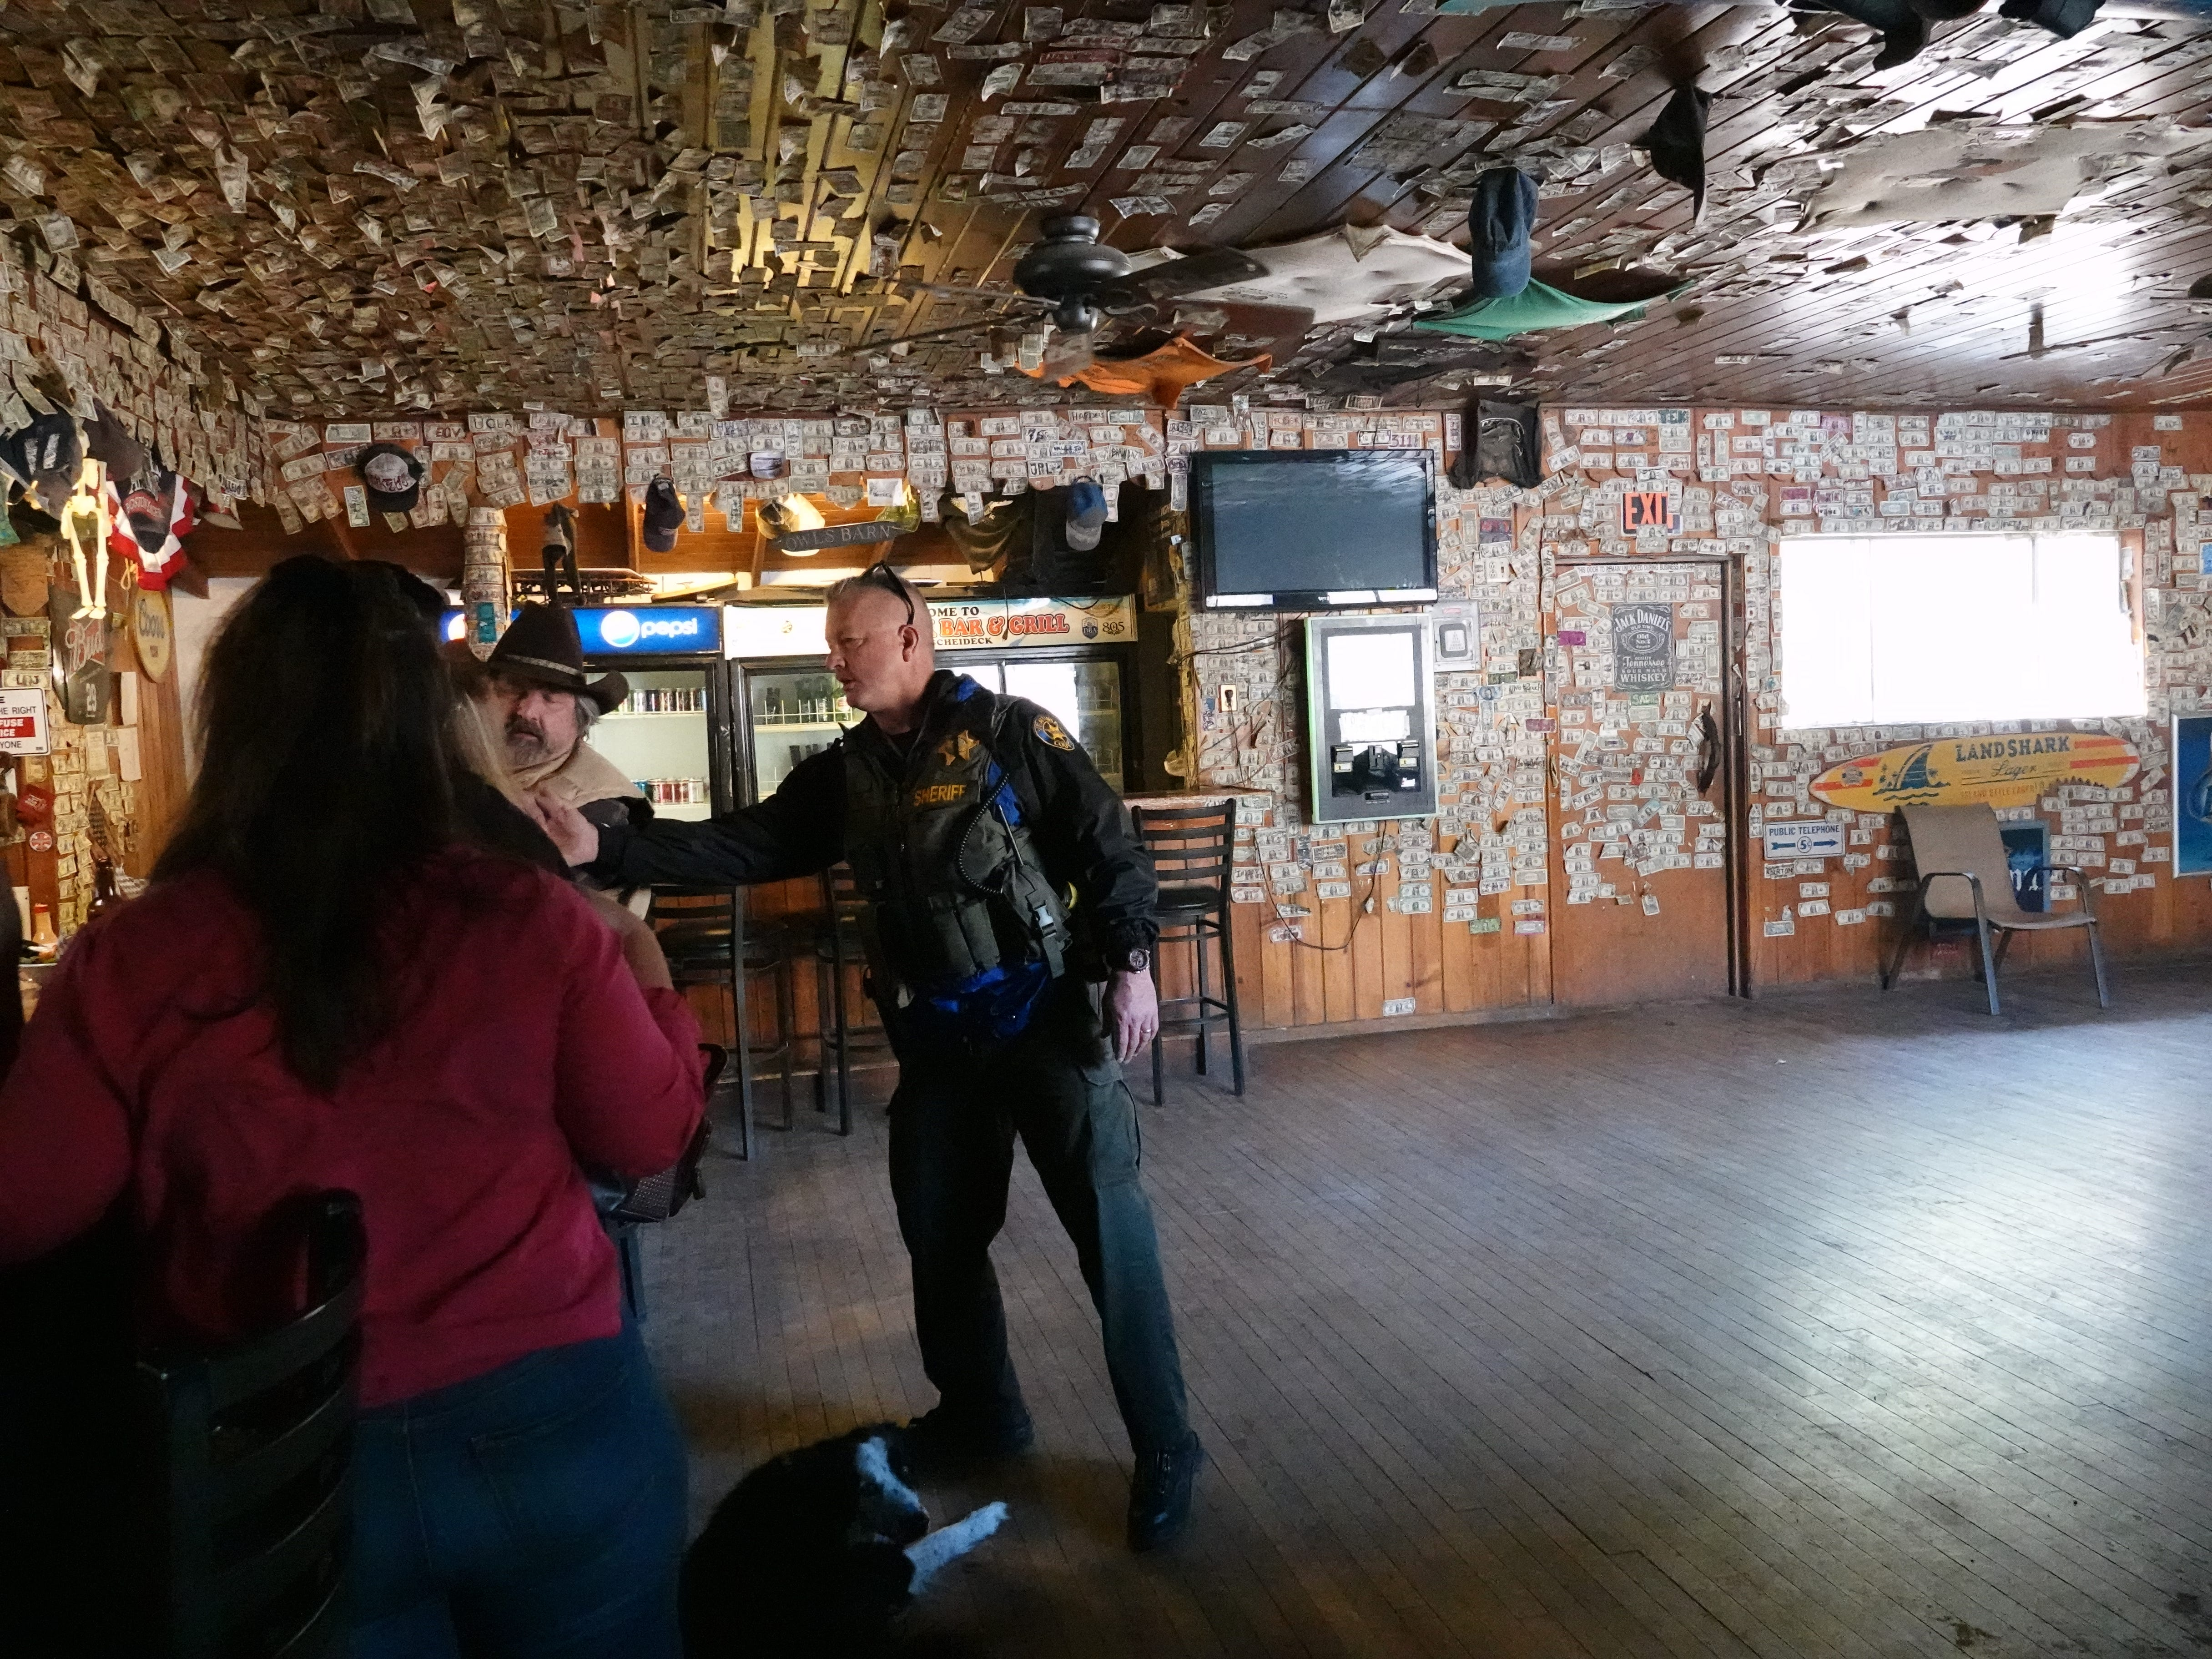 Ventura County Deputy Bob Steele leans over to shake a patron's hand inside the Reyes Creek Bar and Grill. Steele is one of two deputies who patrol 610 square miles of rugged terrain from the remote Lockwood Valley substation.